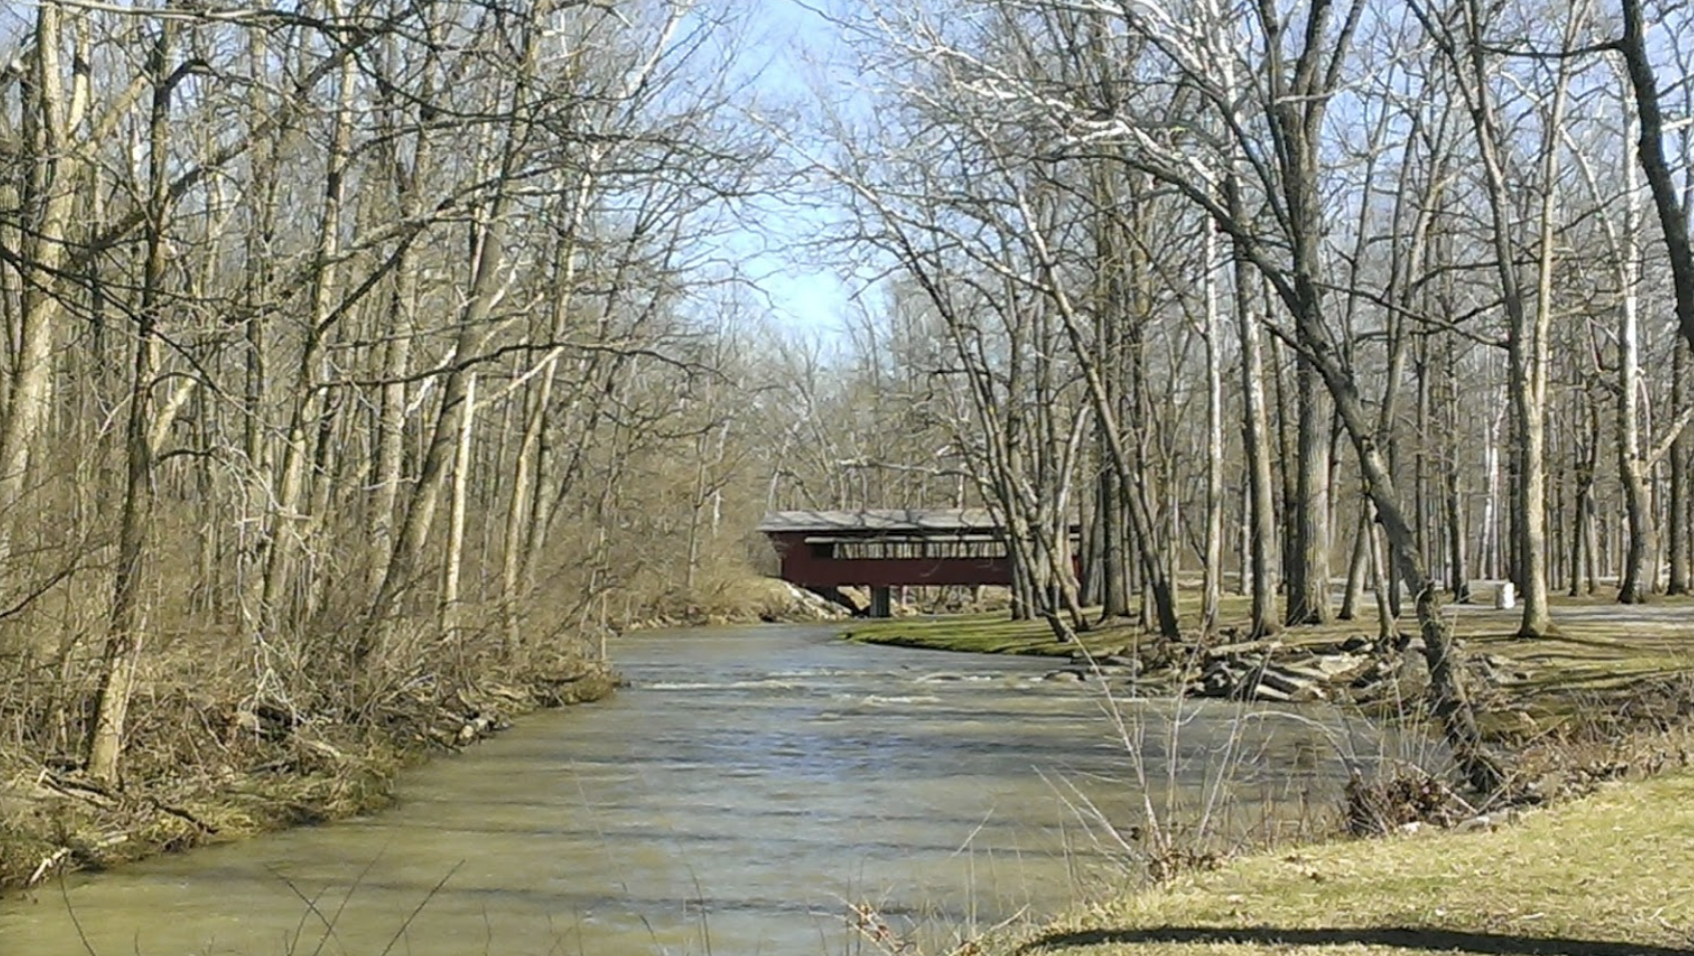 Landscape of Tawawa park with covered bridge over a river in the distance